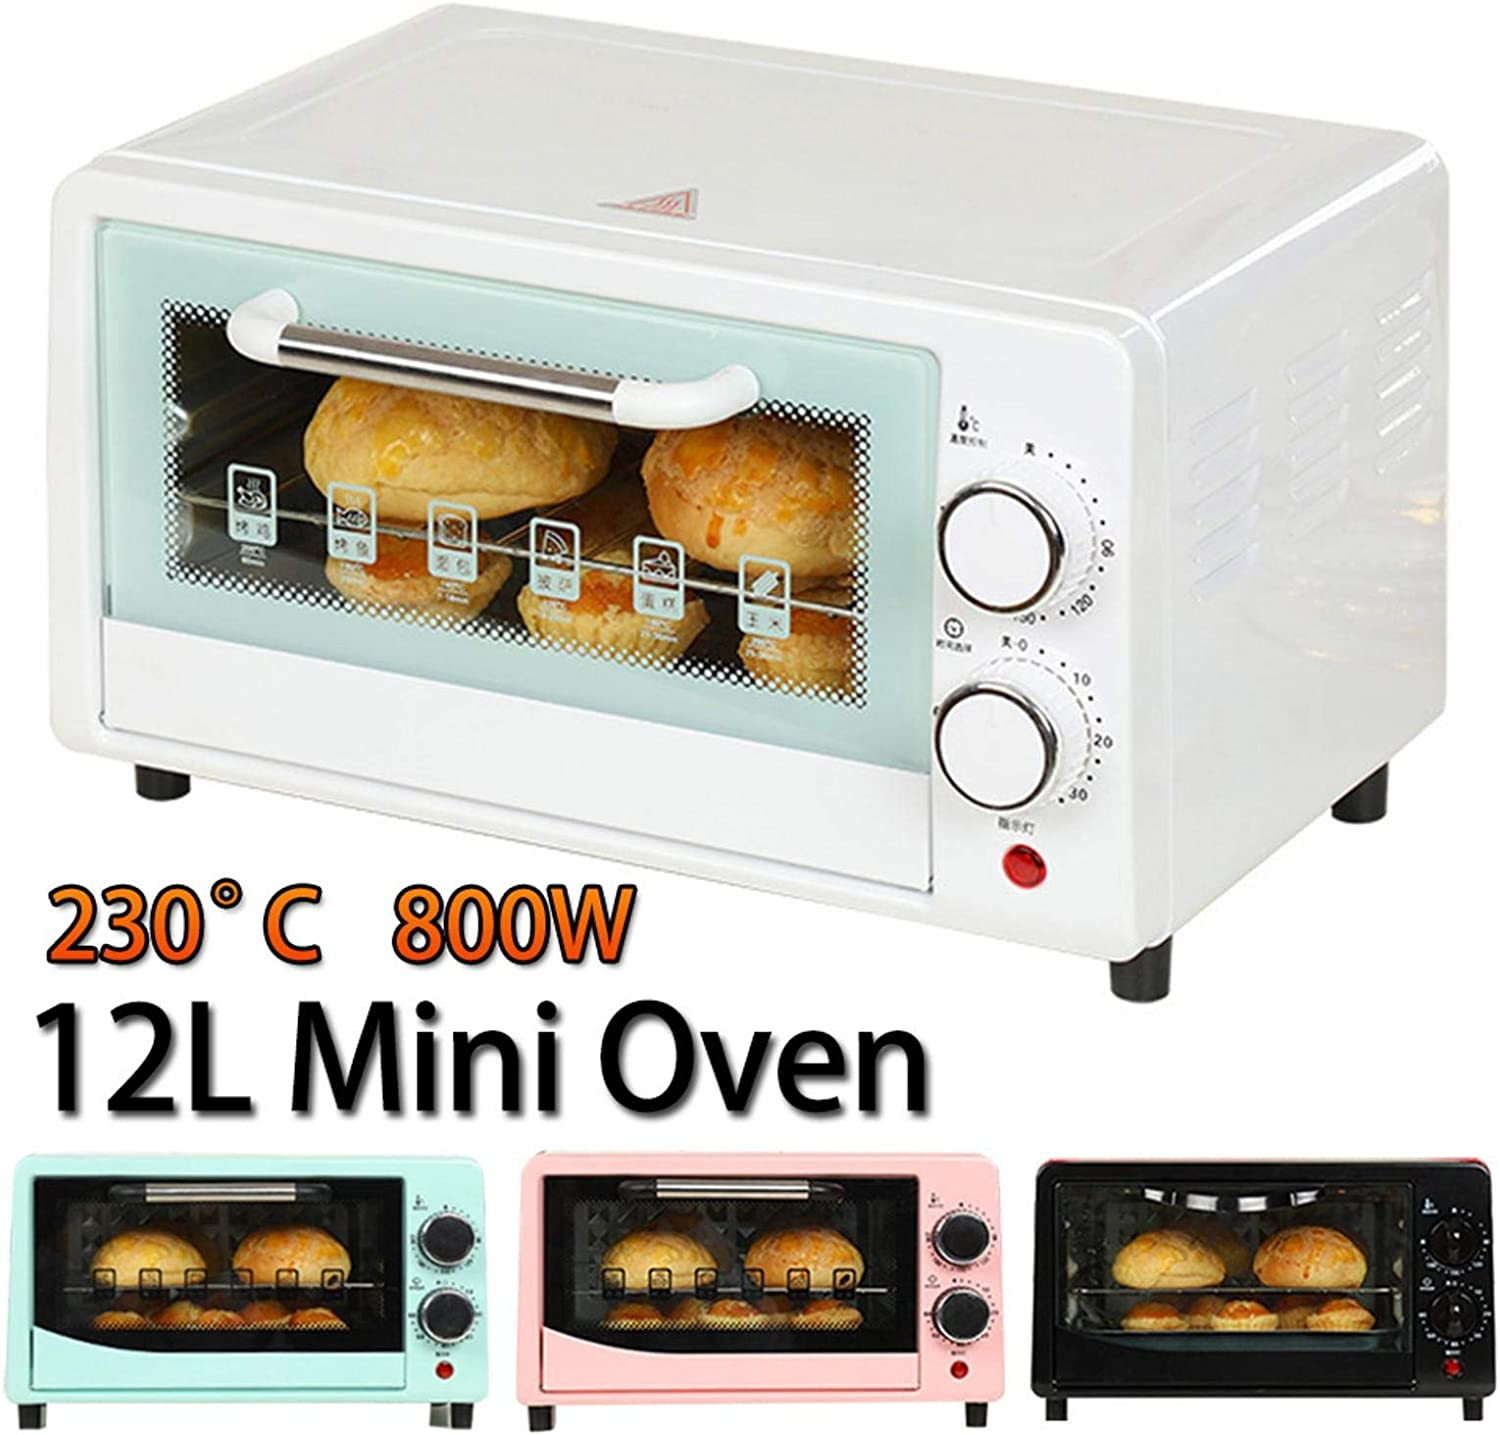 Countertop Toaster Oven Thawing Mini Oven 12L 0-230/°C 800W Toaster Ovens For Grilling Mini Oven With Baking Tray Timer Baking